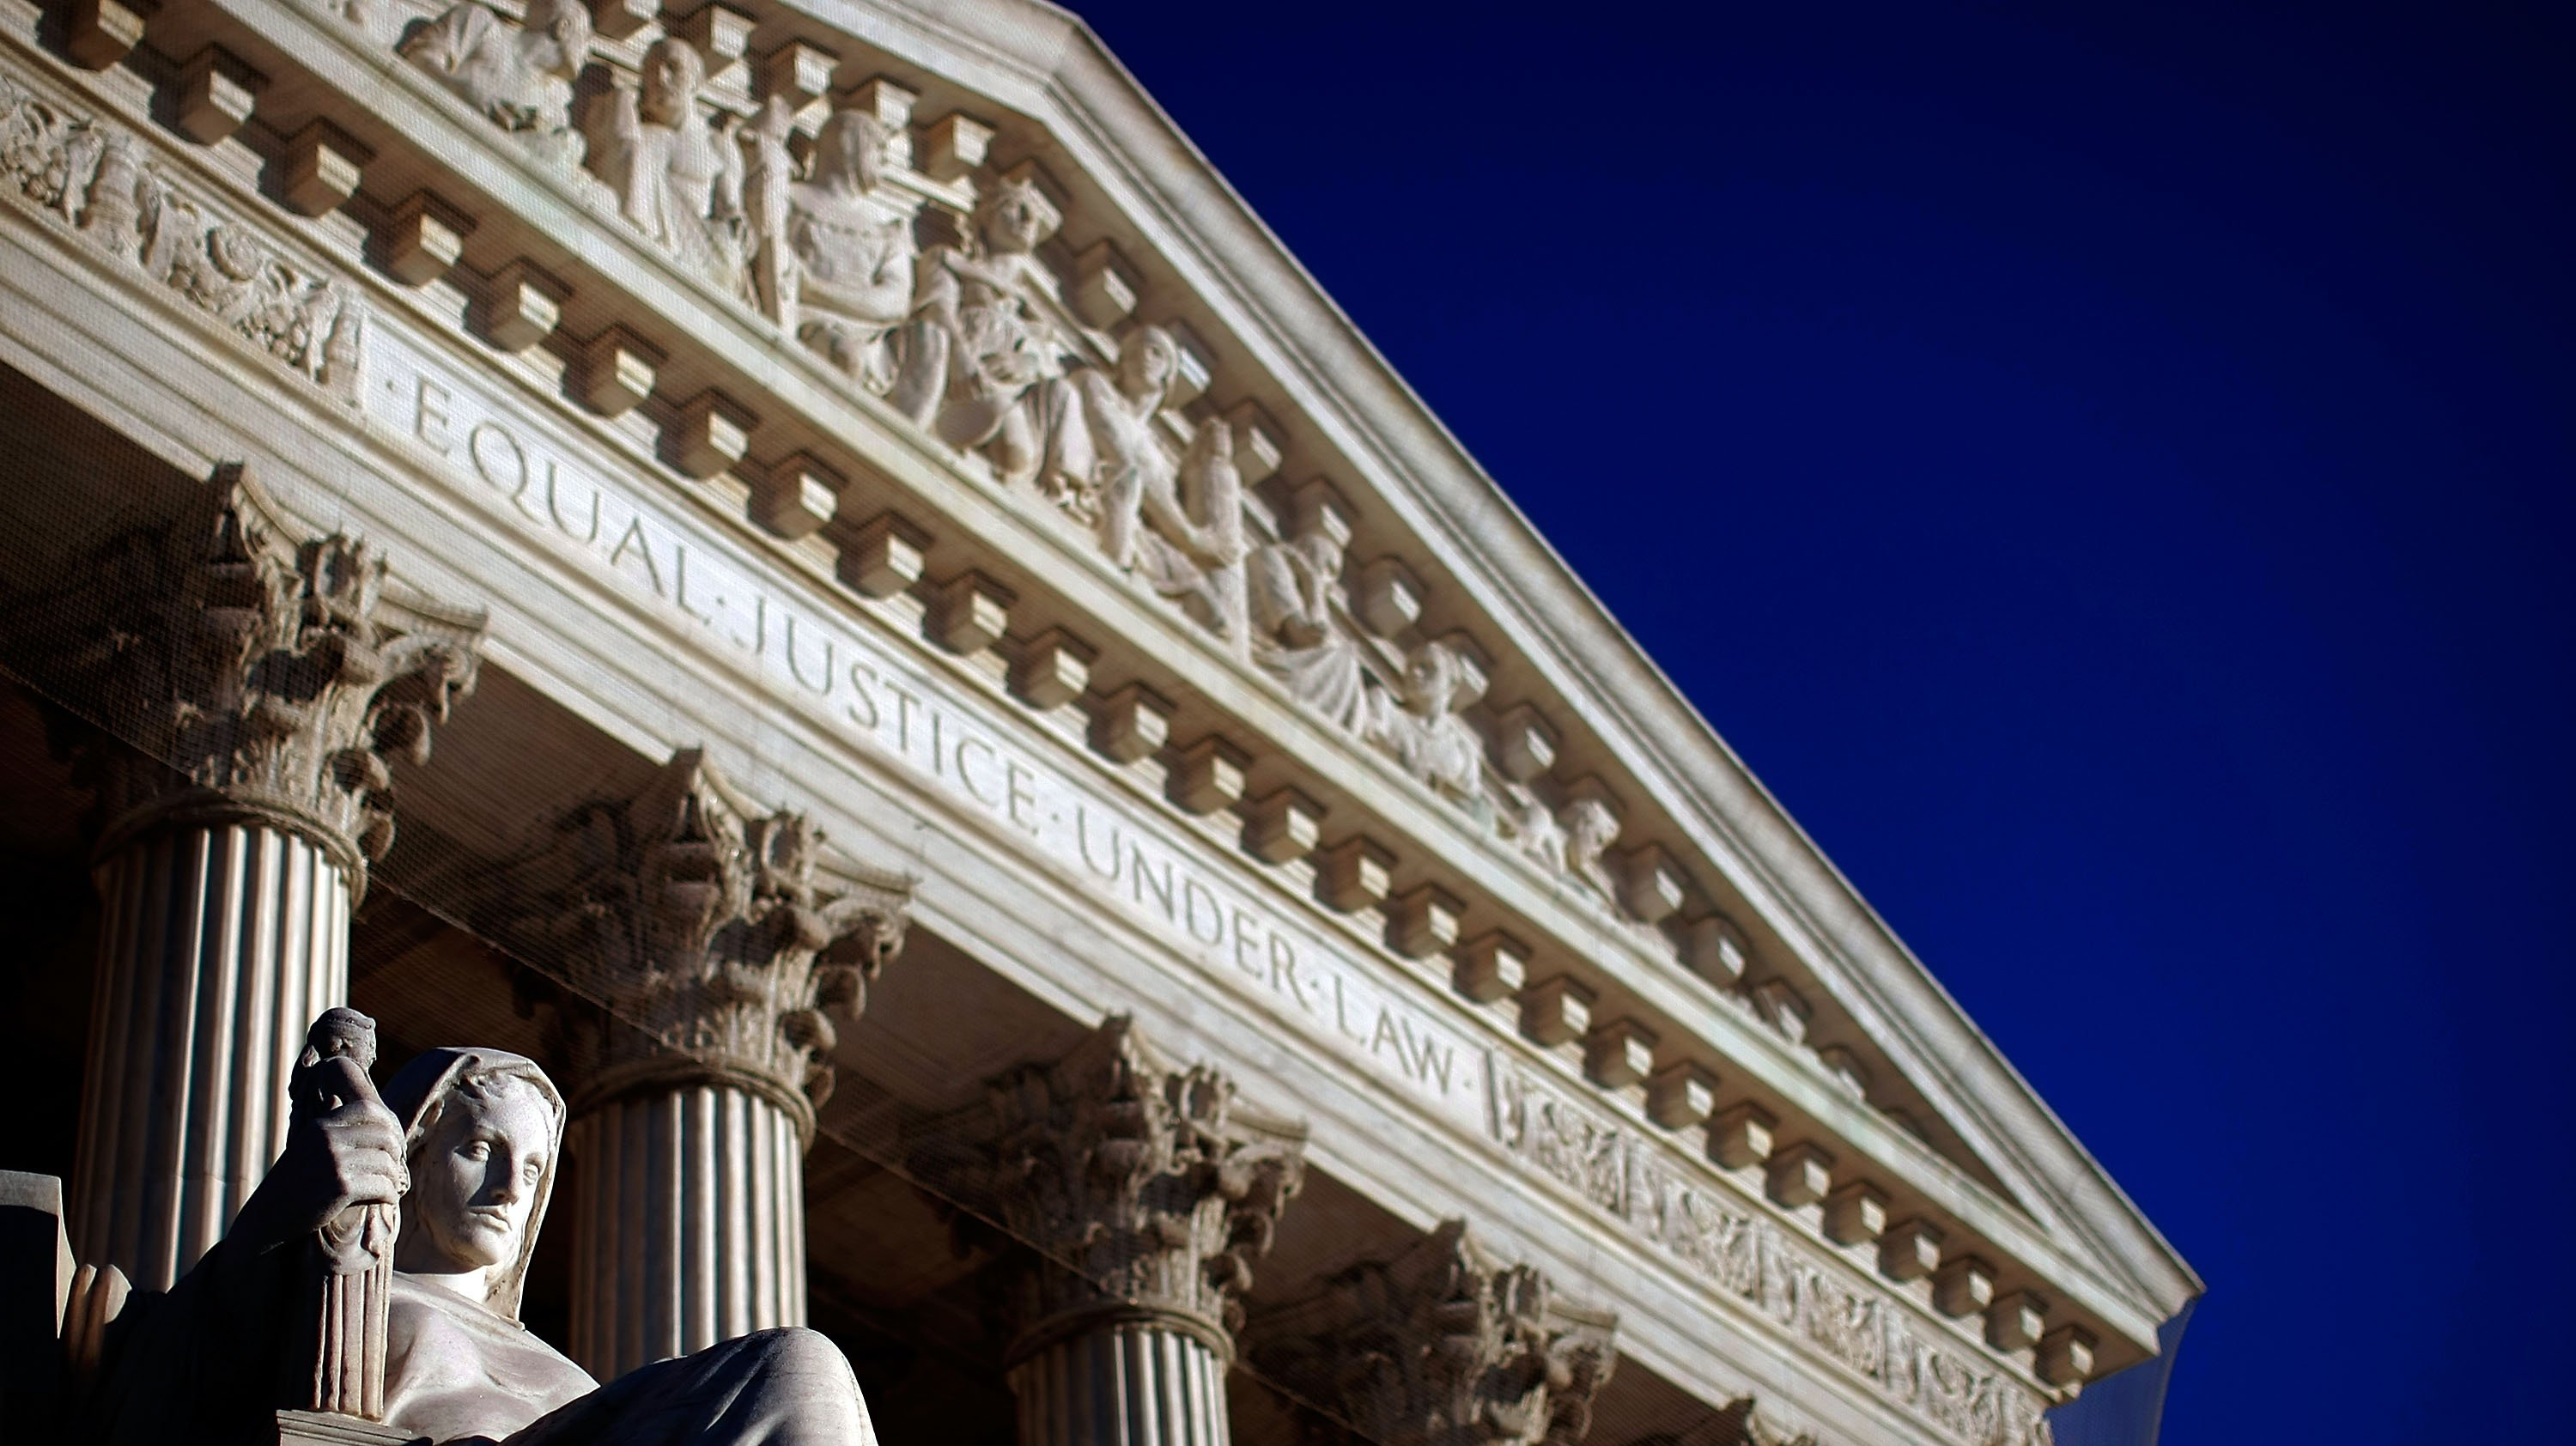 Exterior Views Of The Supreme Court